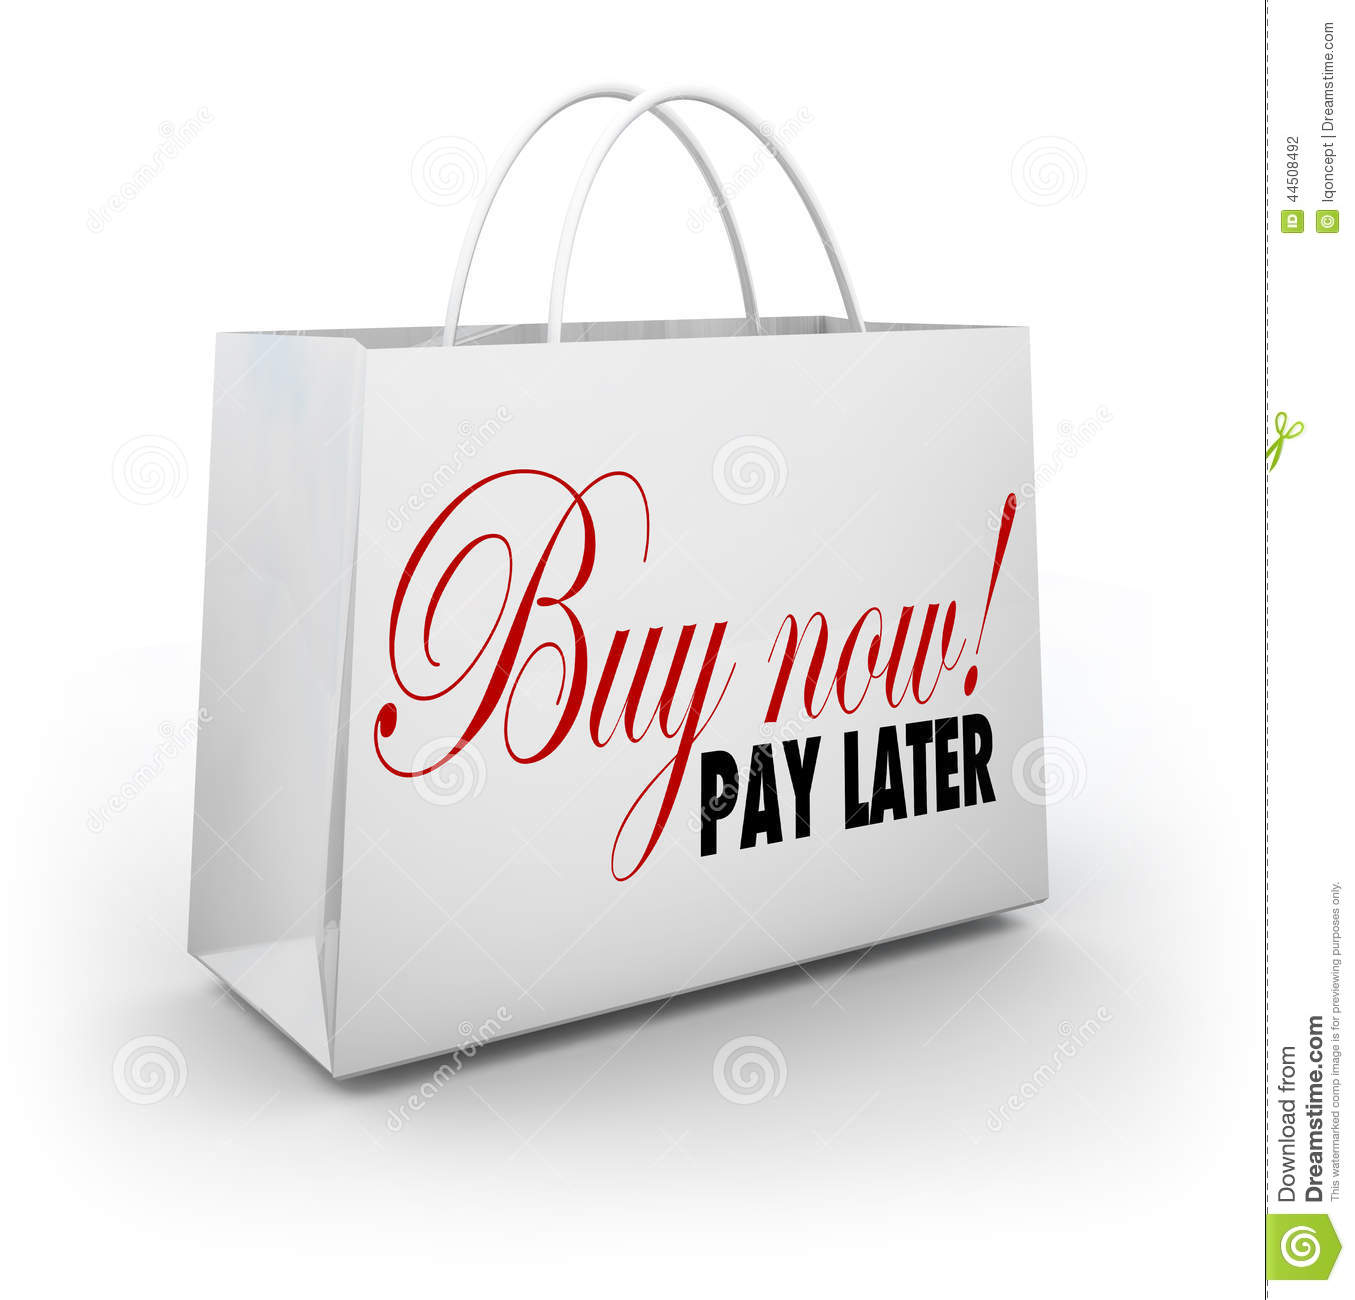 Buy now pay later words shopping bag credit financing offer deal stock